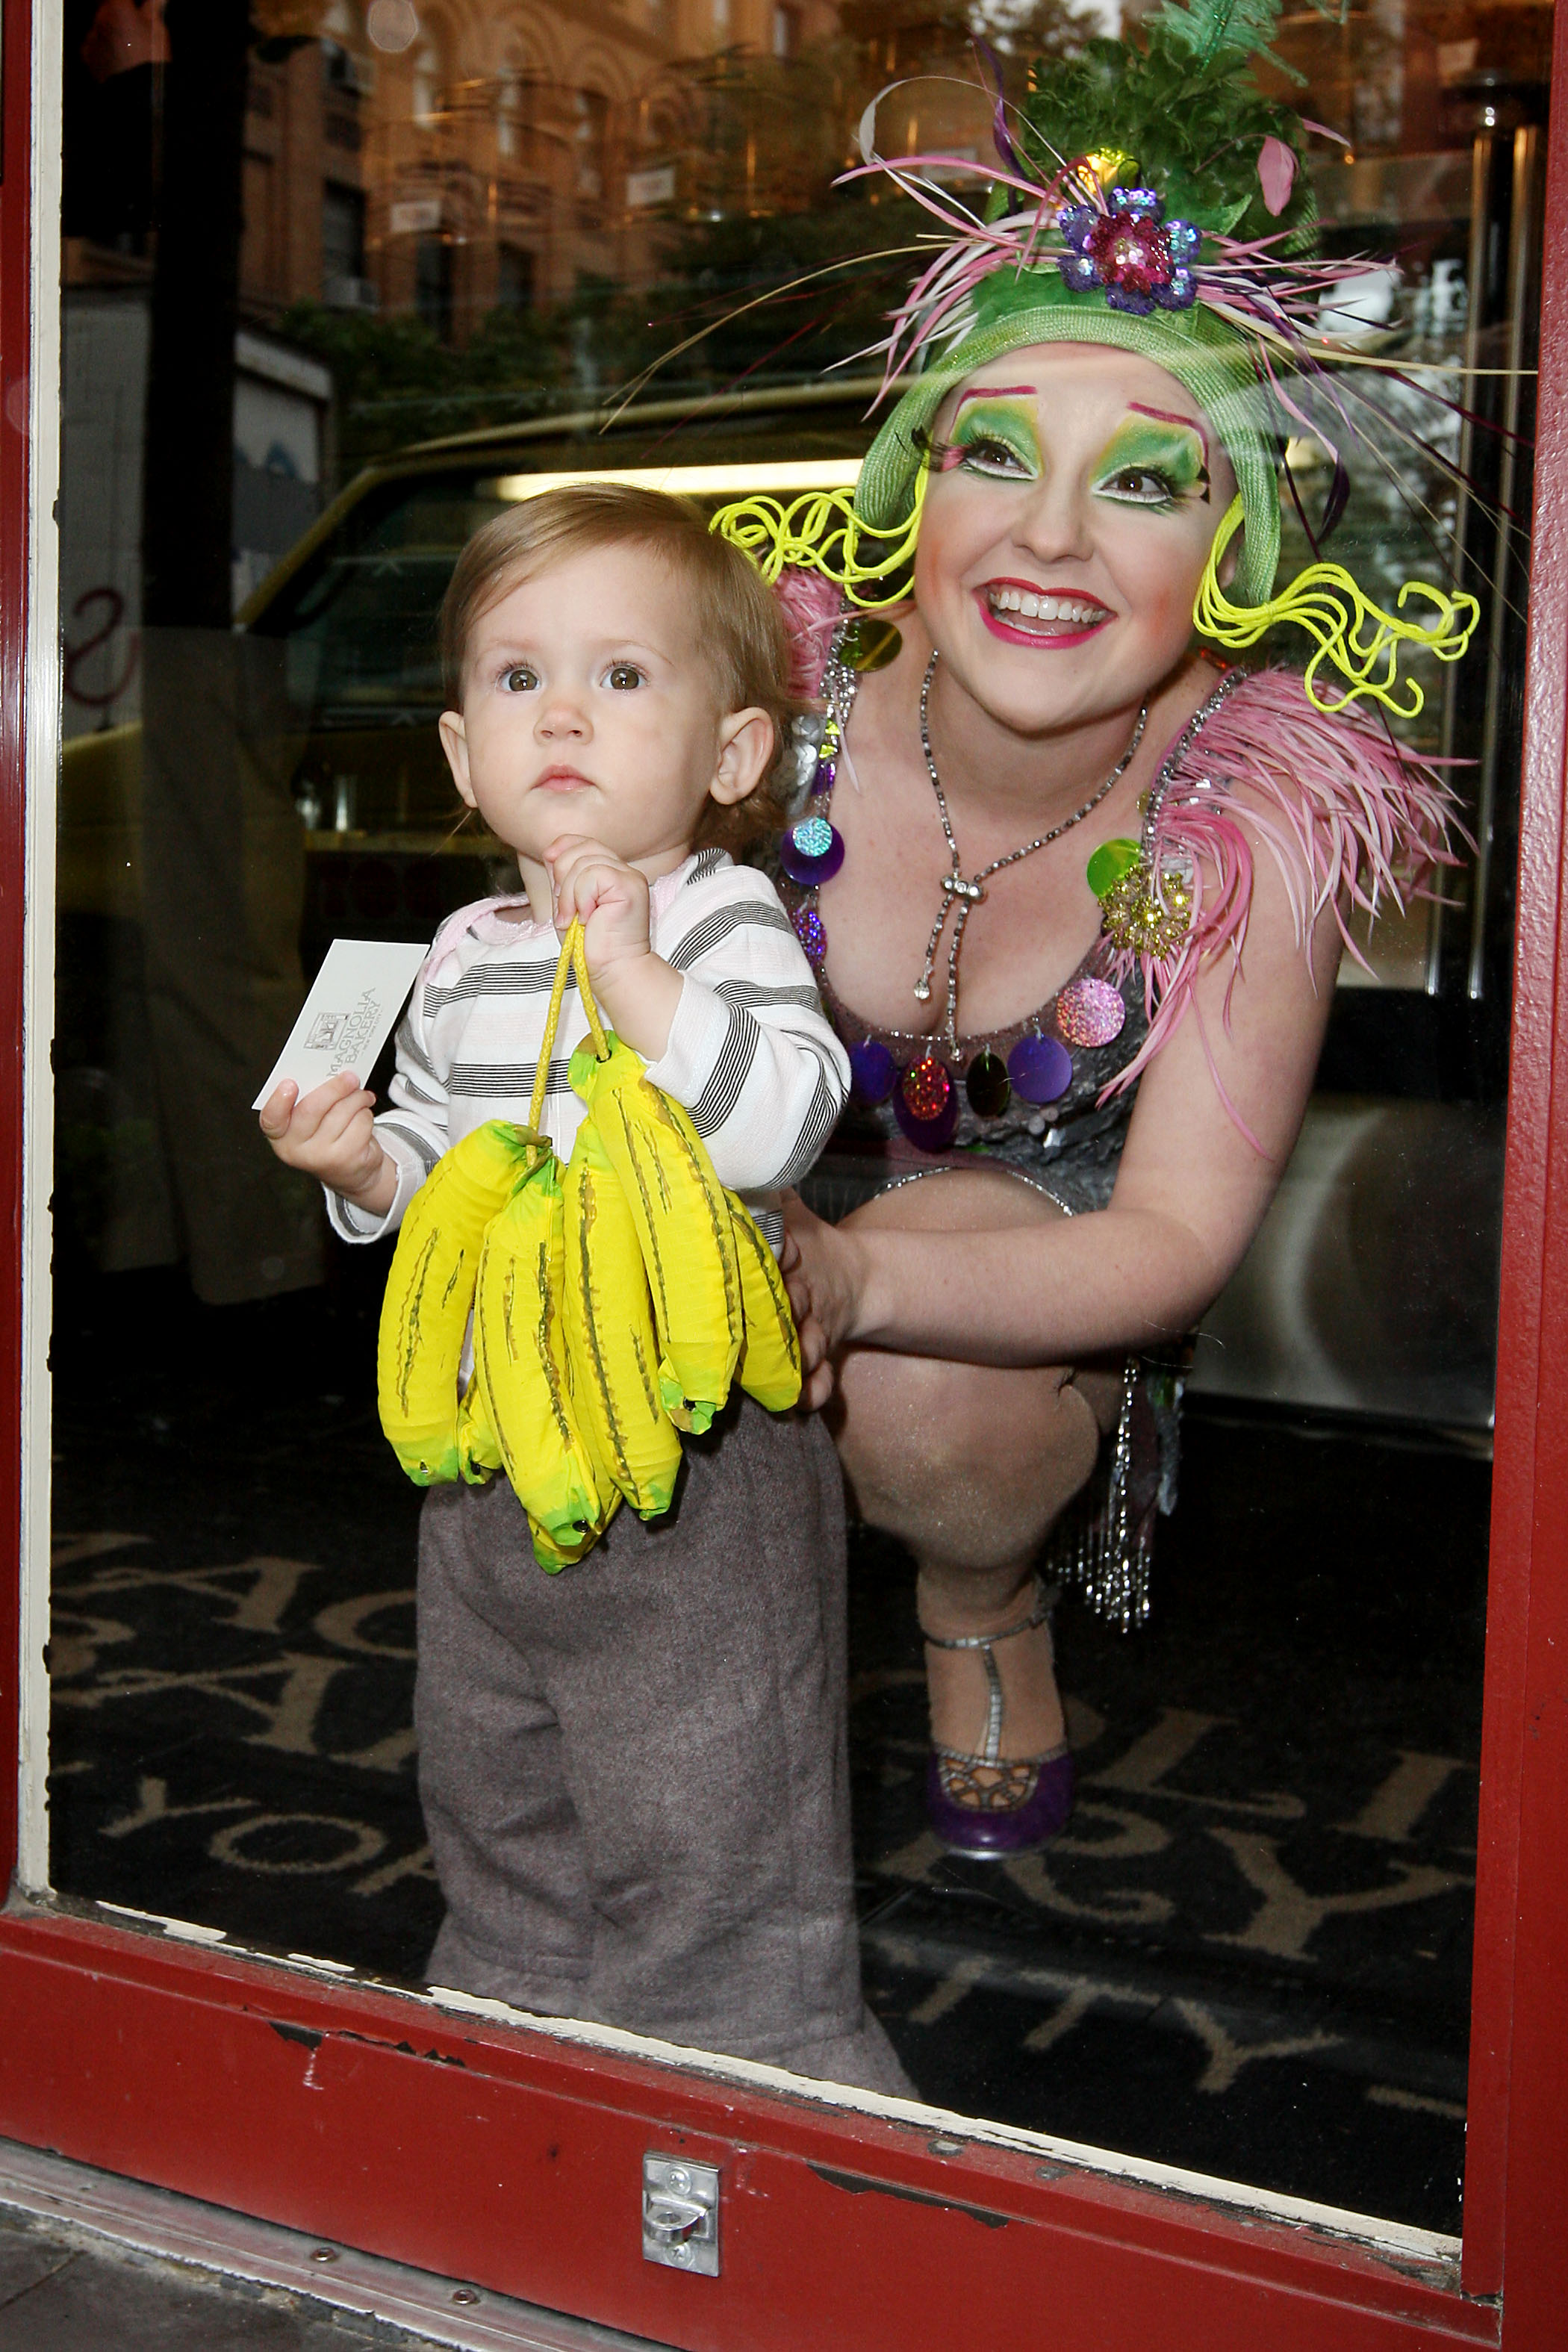 Melissa Schott promoting Cirque du Soleil's Bananna Shpeel at Magnolia Bakery in New York City.